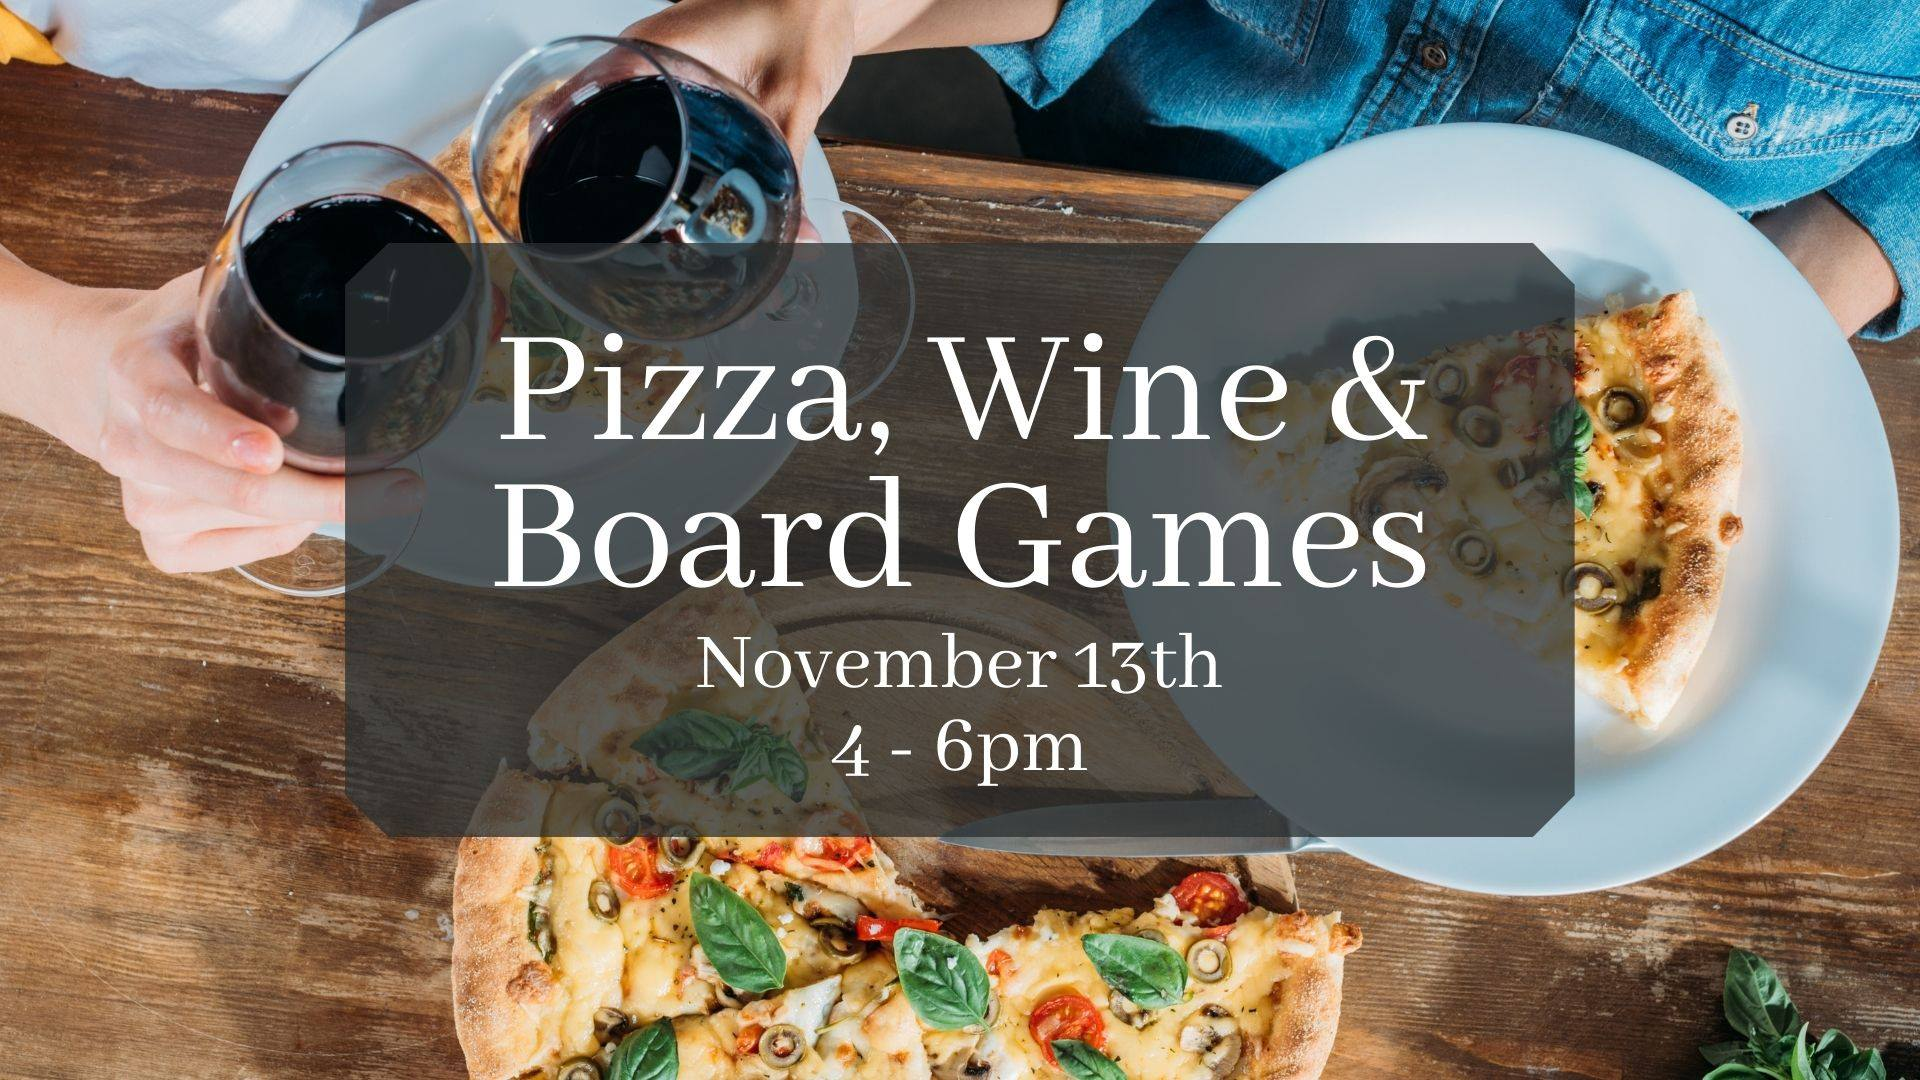 124603649 1184036321997165 4712740577605242558 o - Pizza, Wine and Board Games at The Great Oregon Wine Co. and Distillery